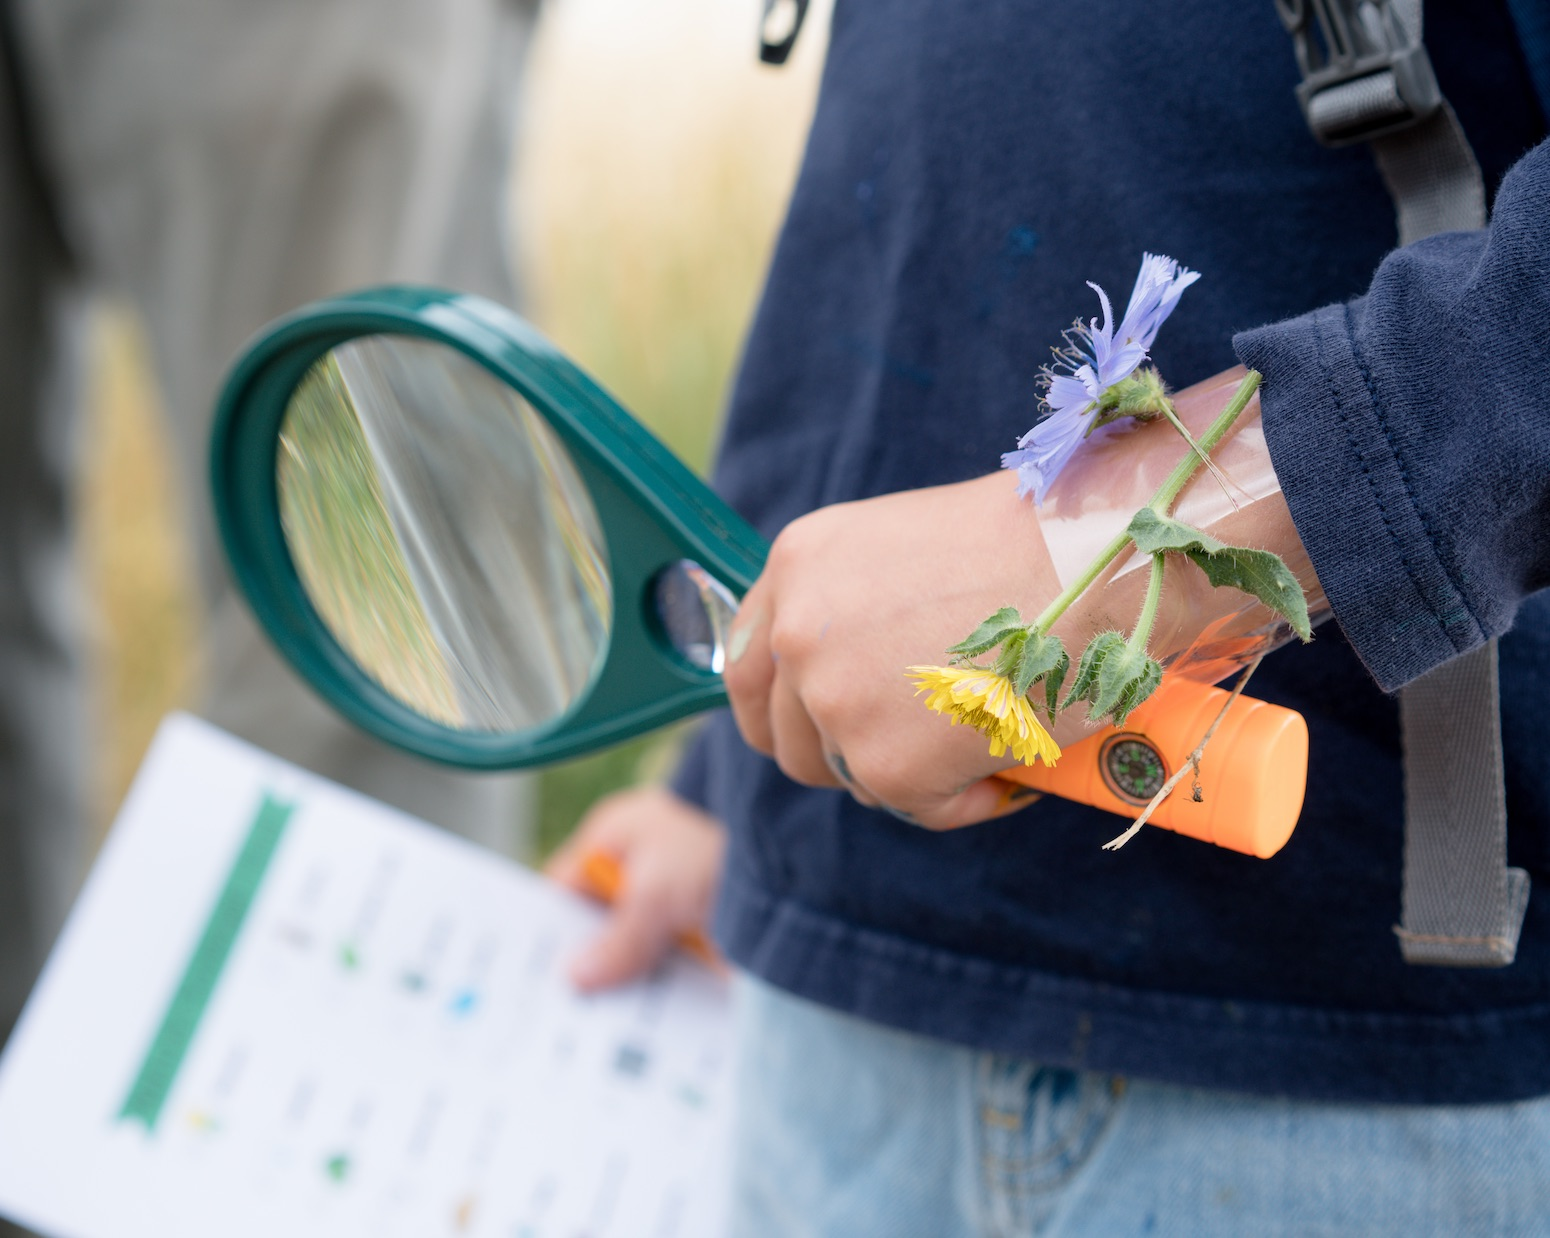 child with magnifying glass showing active learning outside